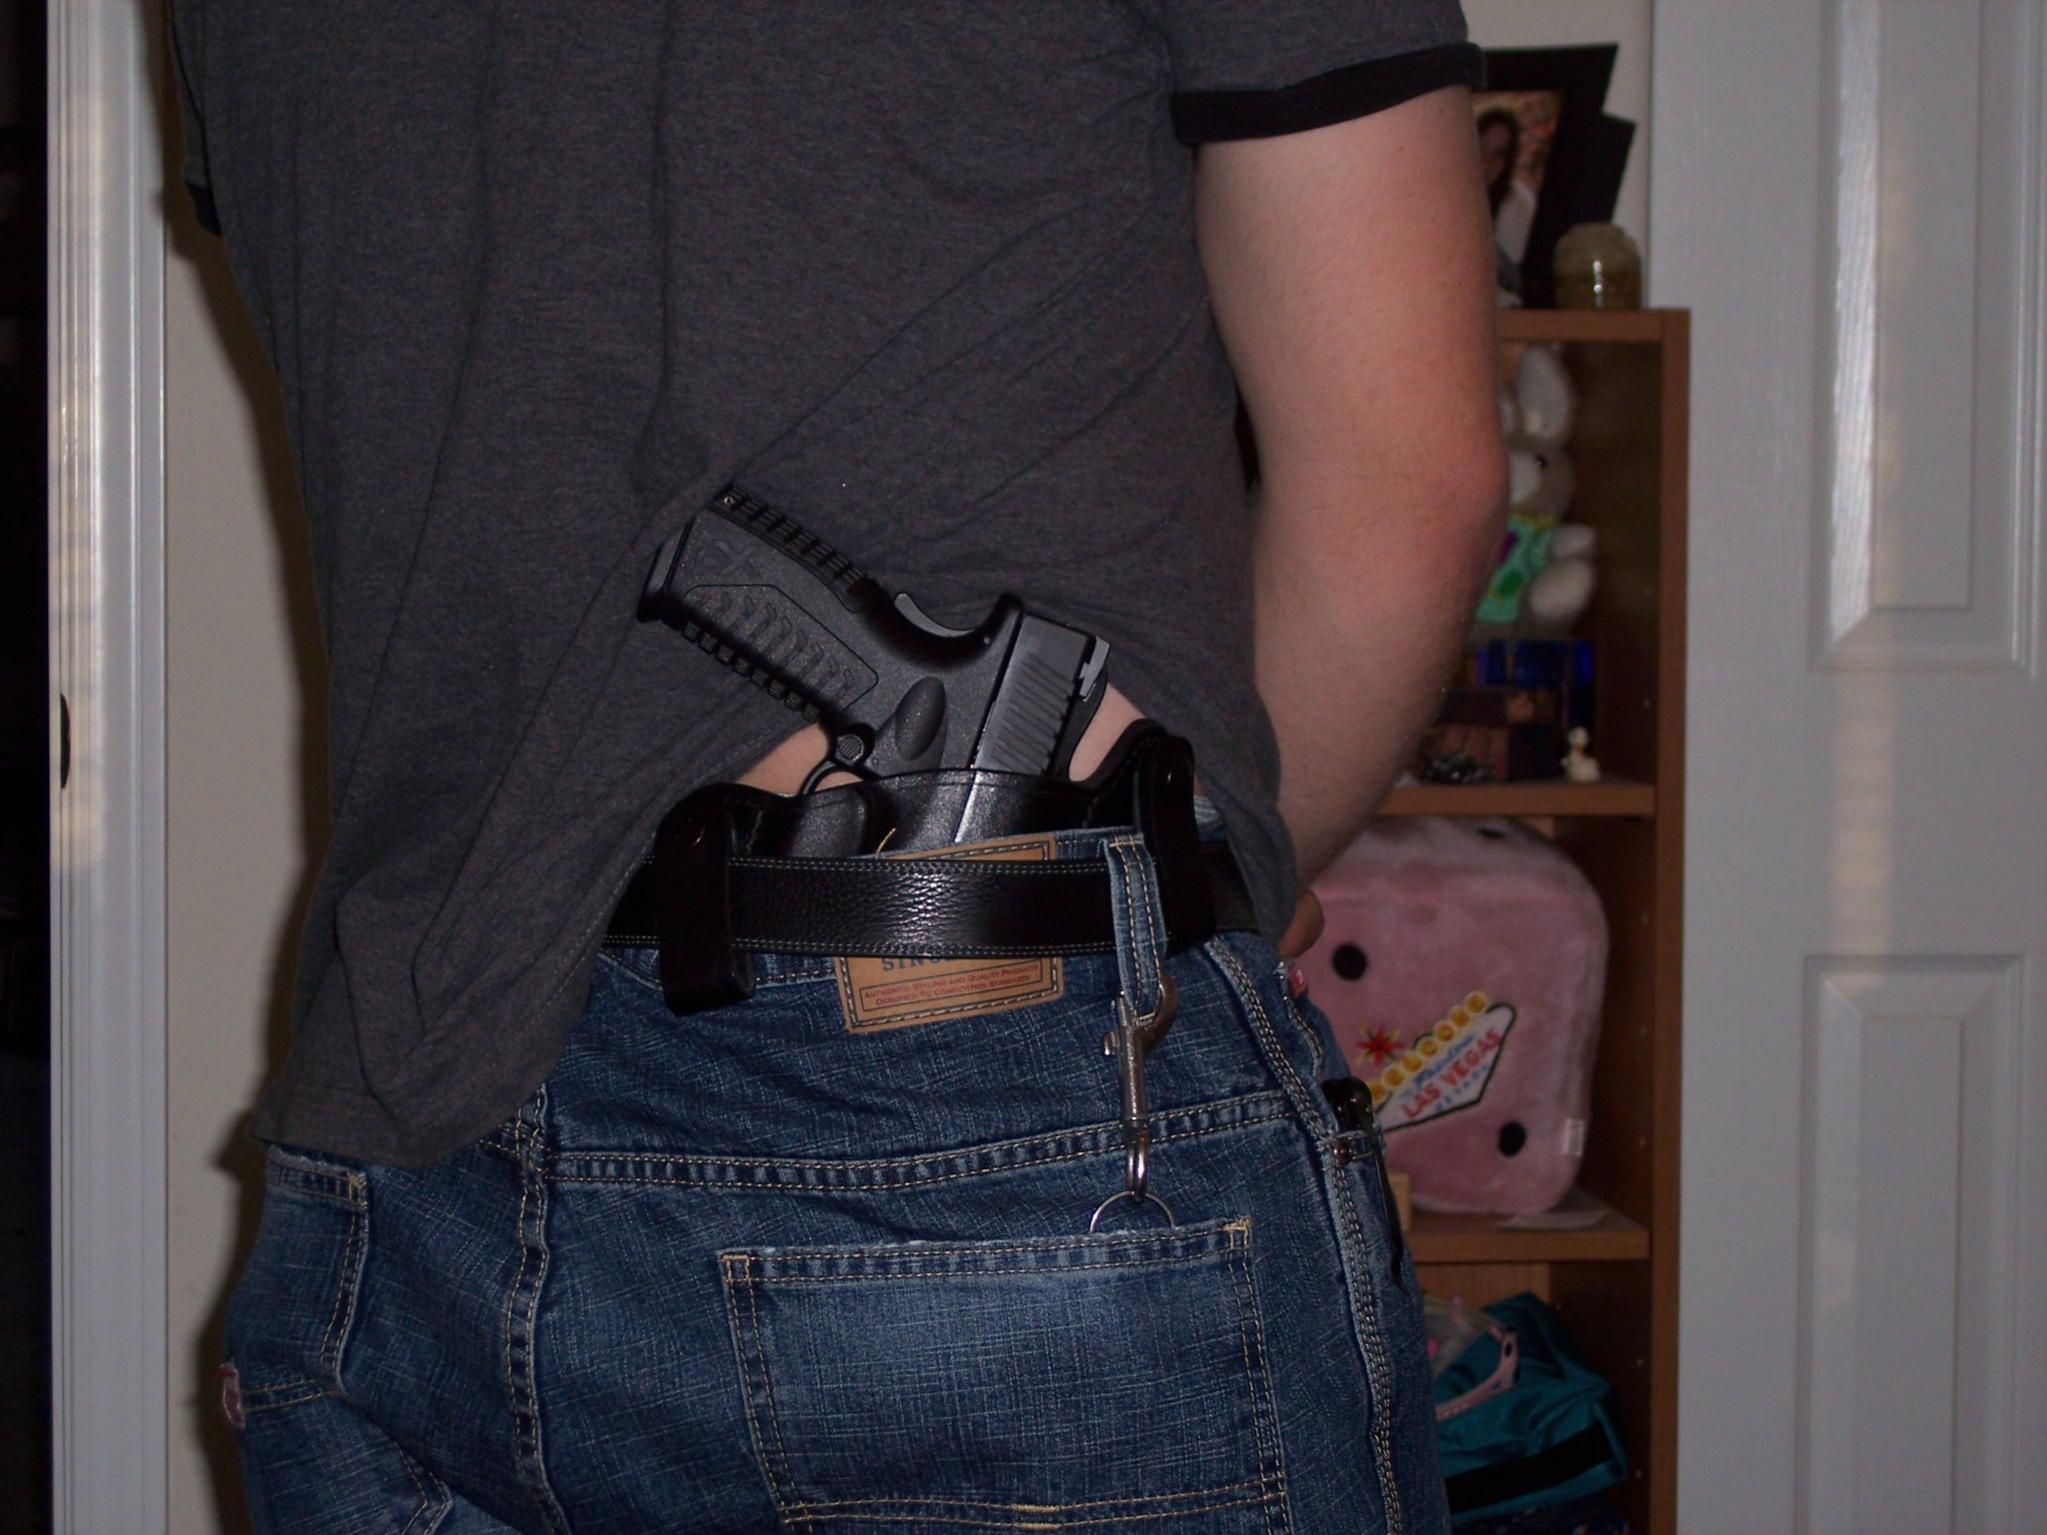 Let's See Your Pic's - How You Carry Concealed.-100_3302.jpg